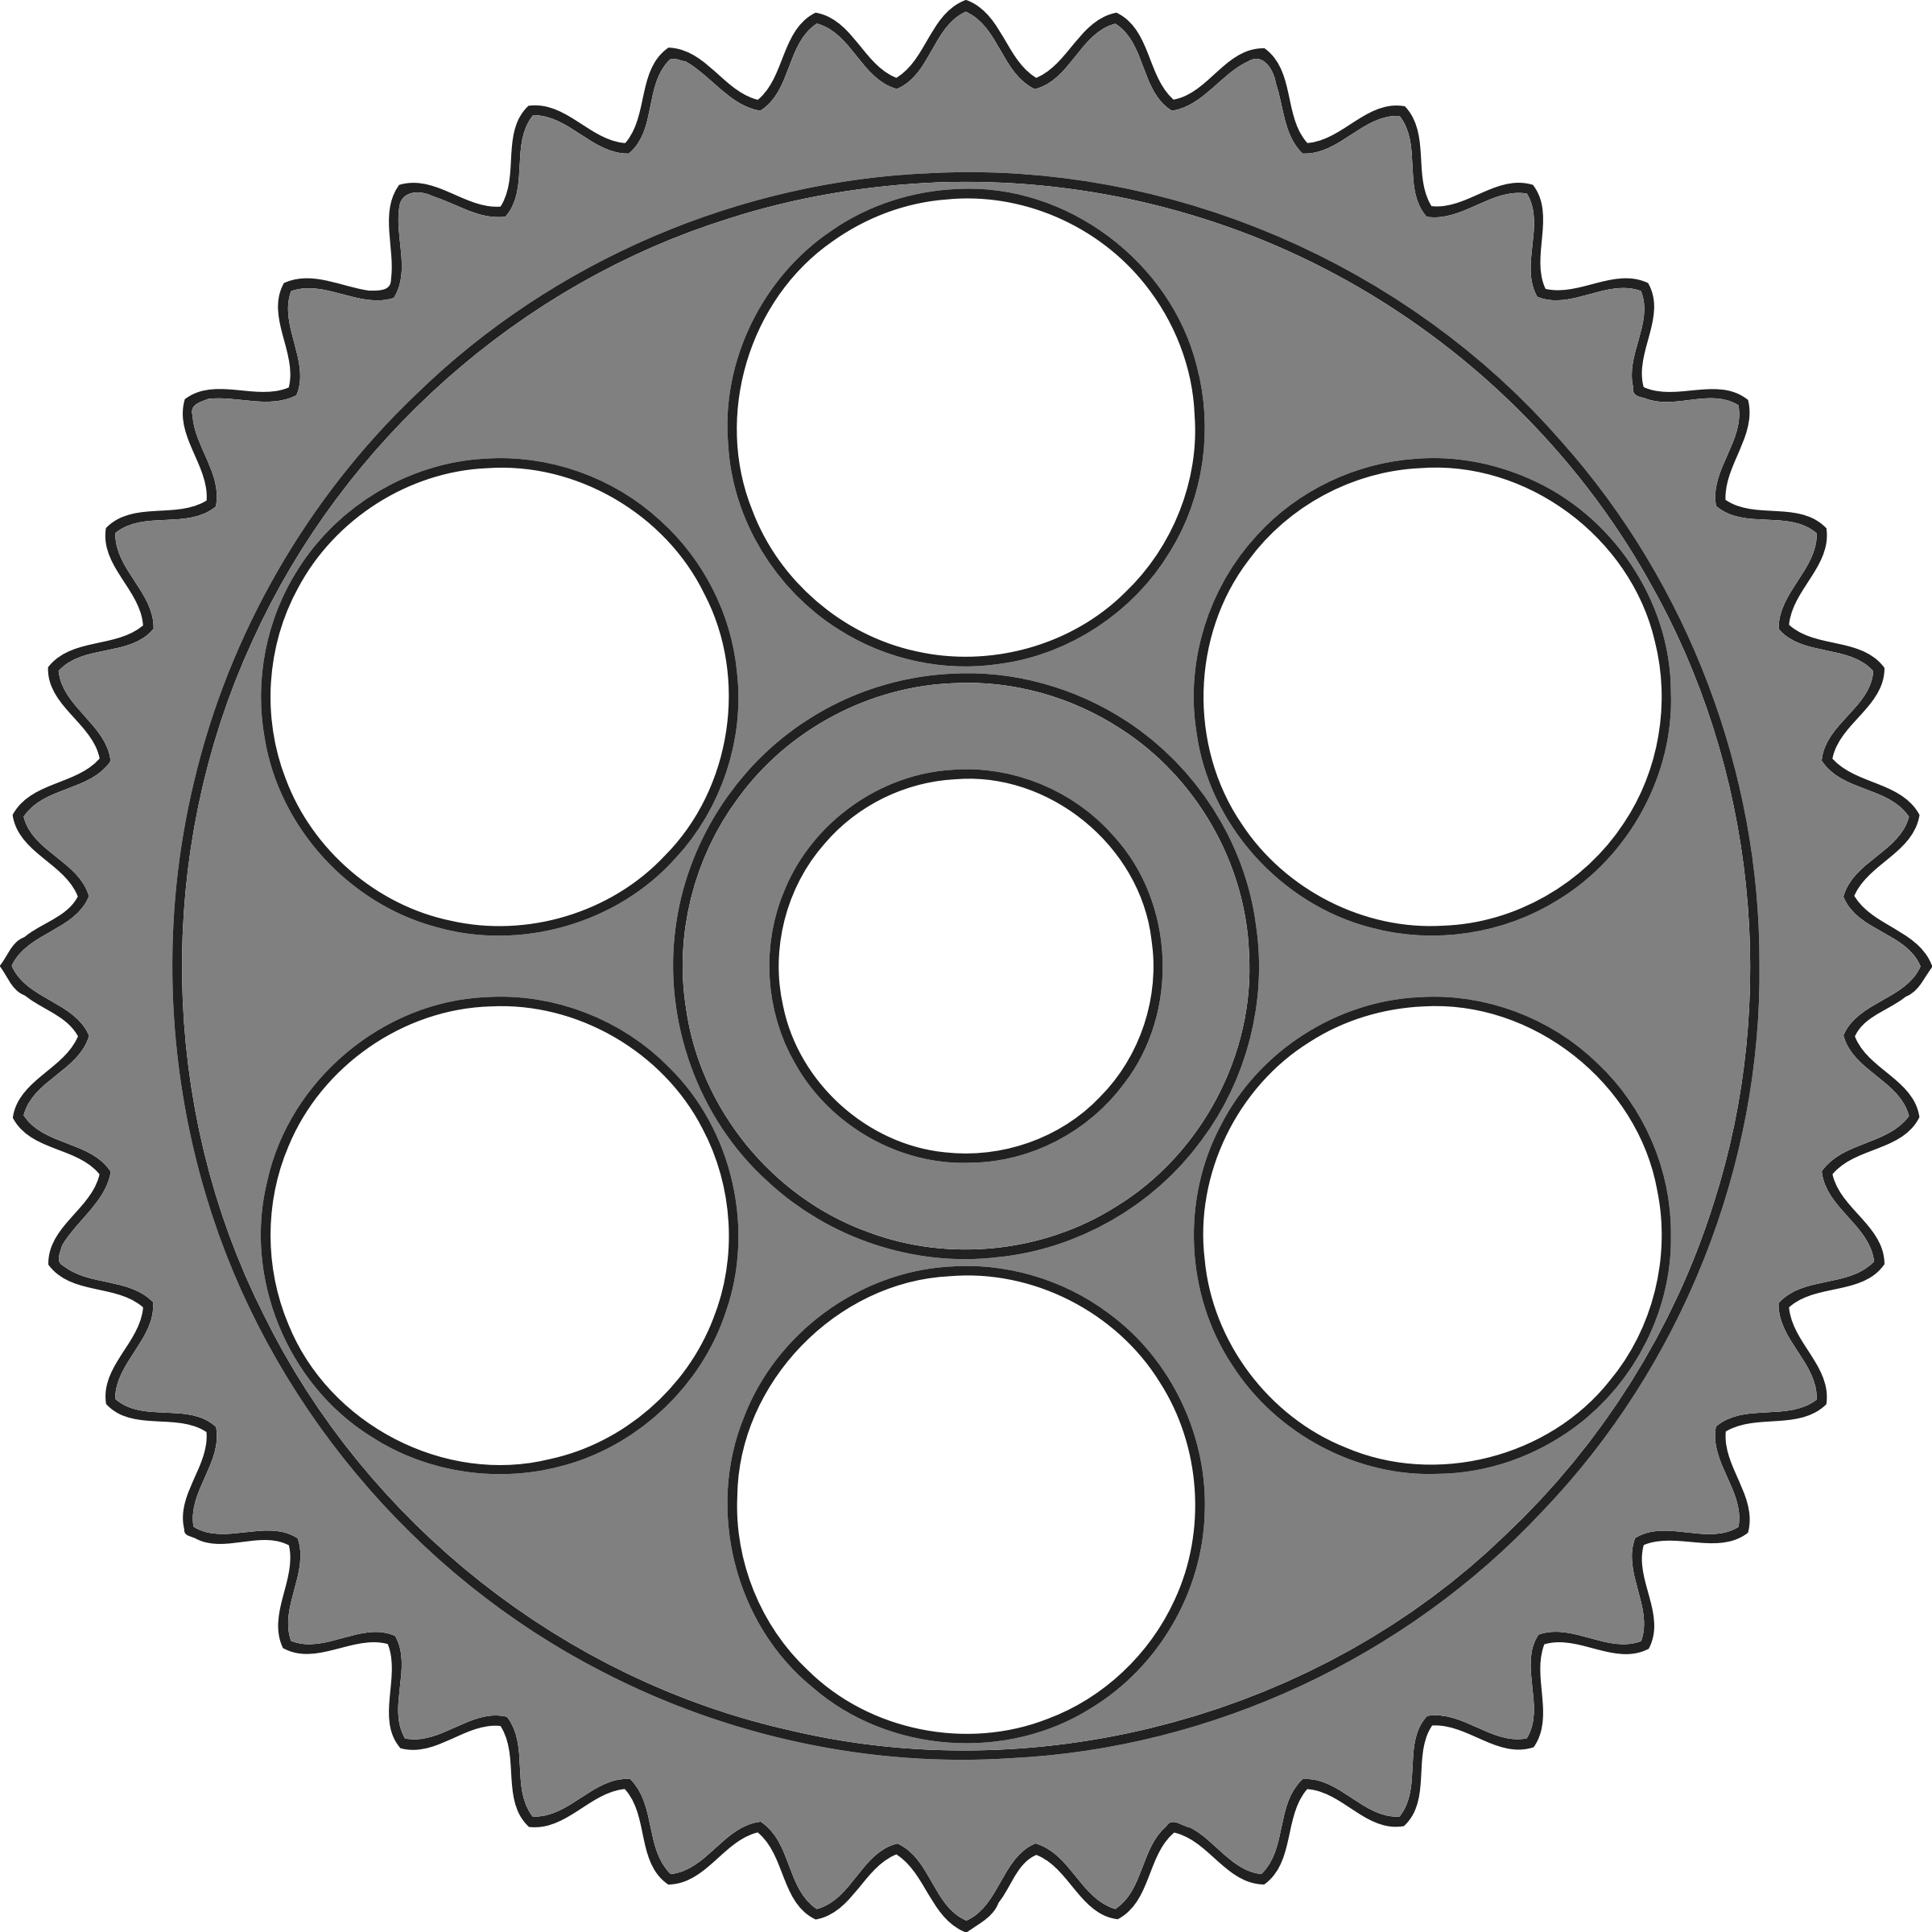 40-tooth gear with circular holes by Firkin